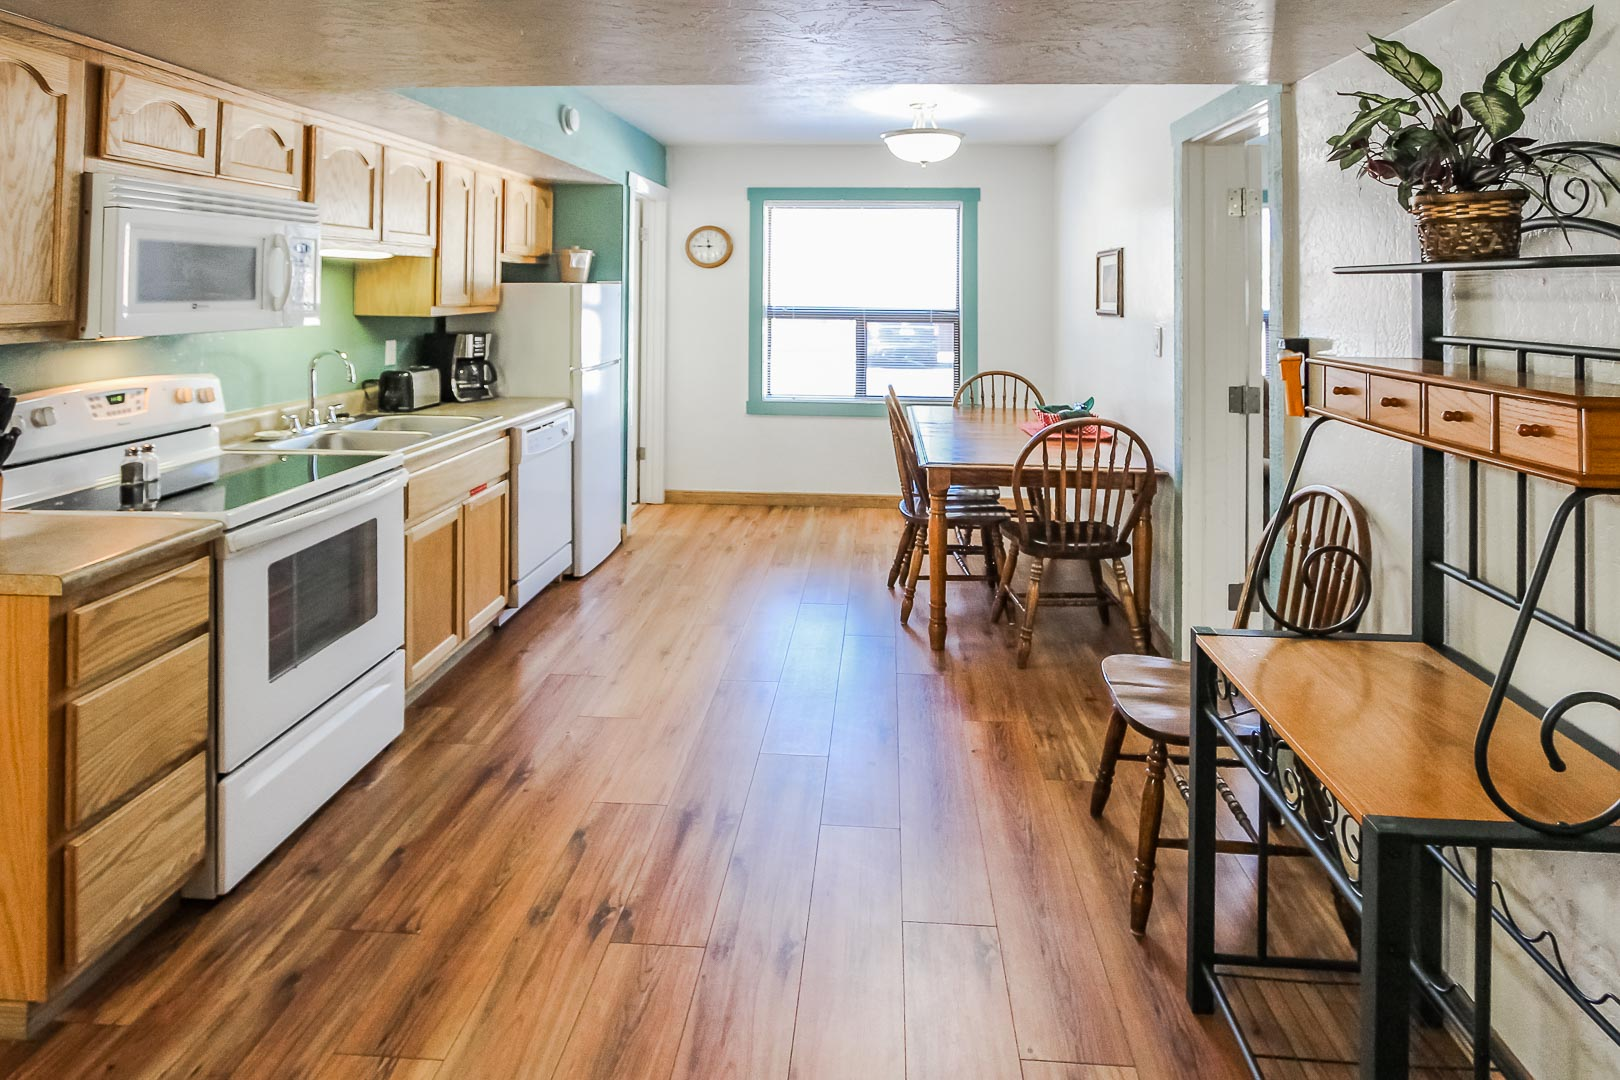 A community kitchen area at VRI's Roundhouse Resort in Pinetop, Arizona.